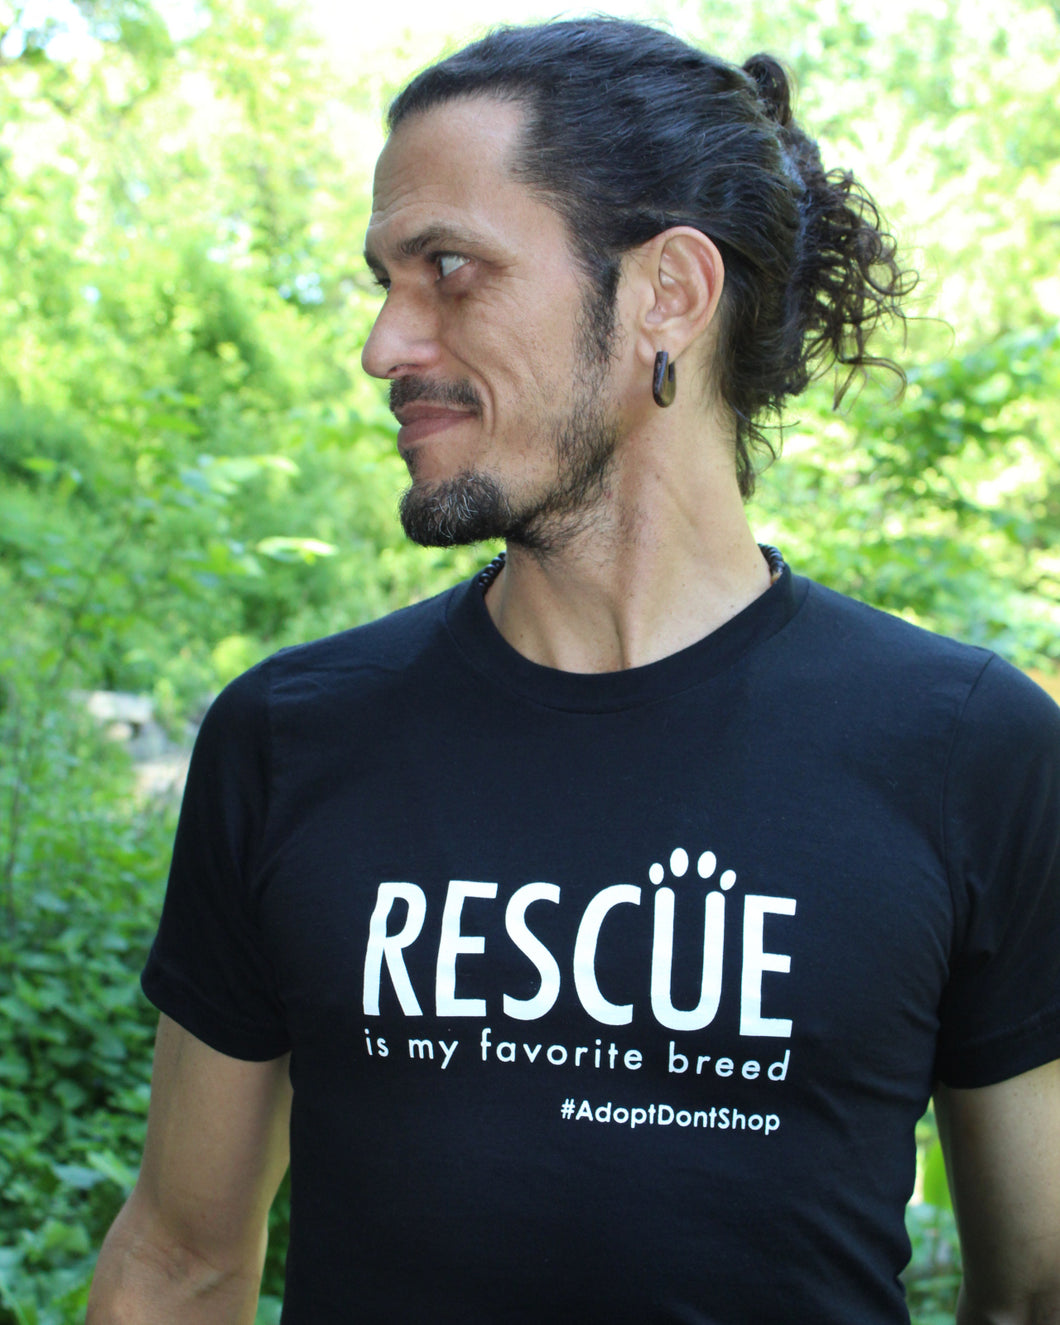 Rescue is My Favorite Breed - Unisex Short Sleeve T-shirt